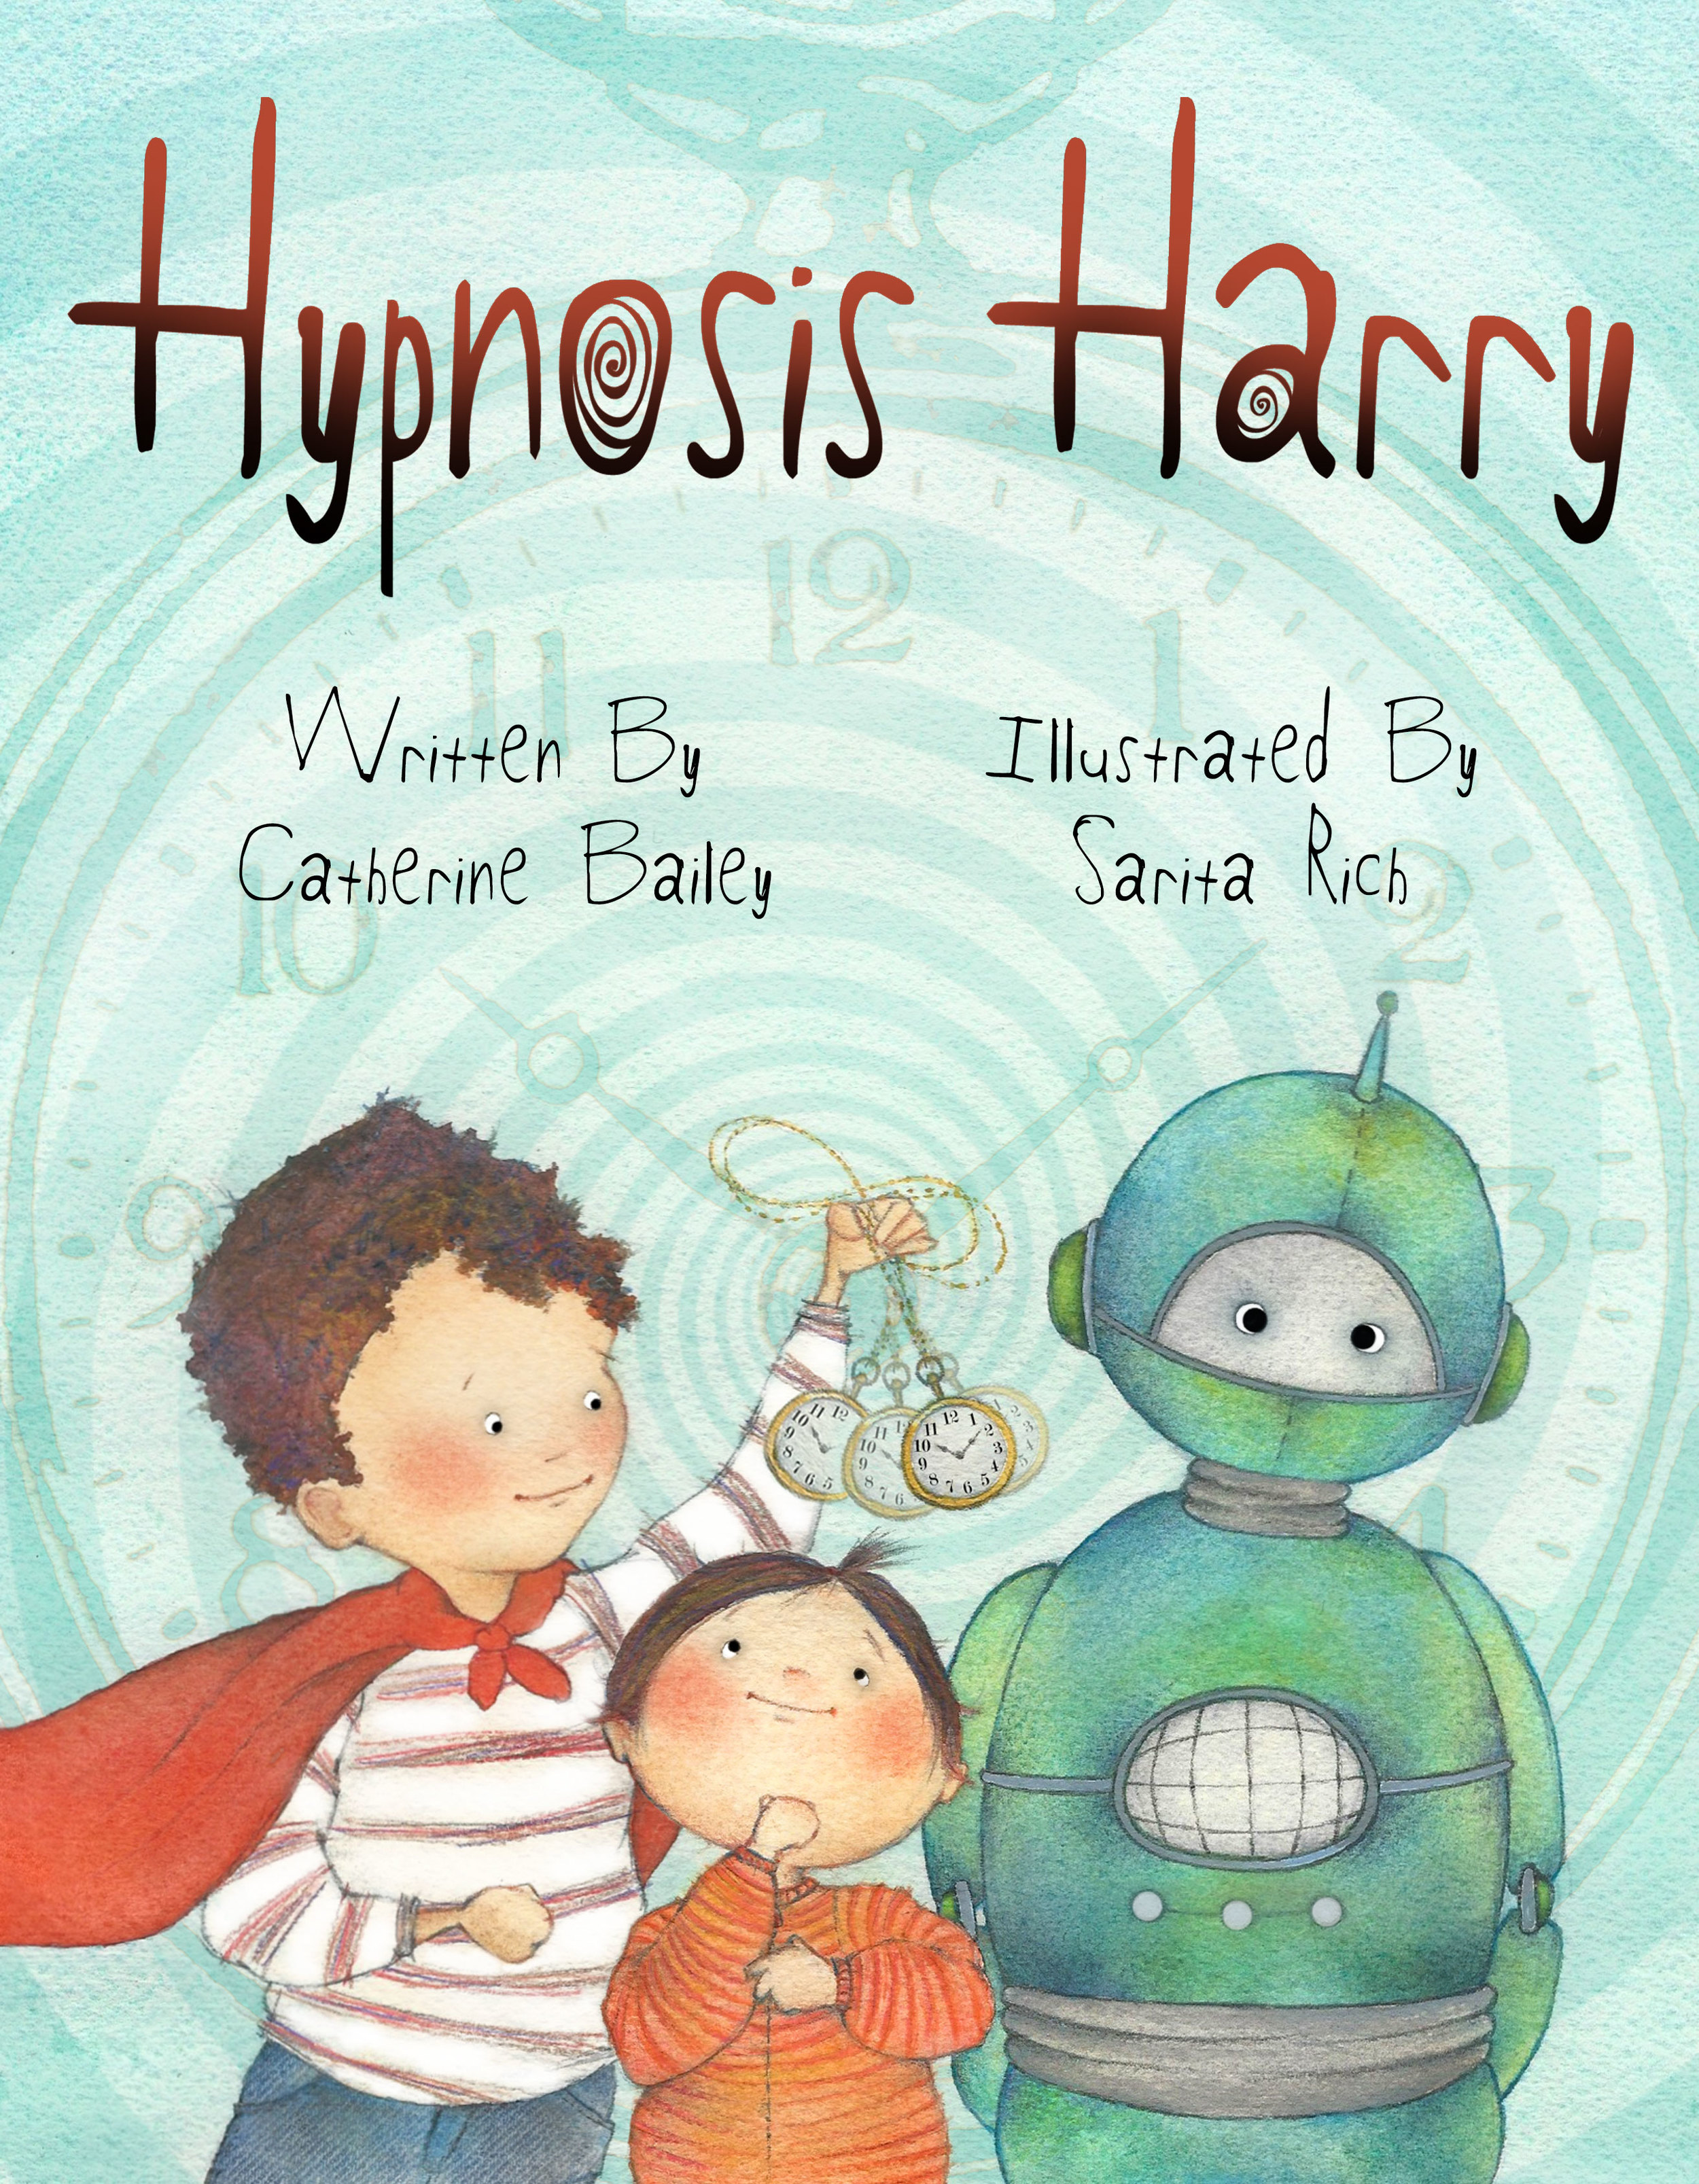 HYPNOSIS-HARRY-cover-4-22-15.jpg